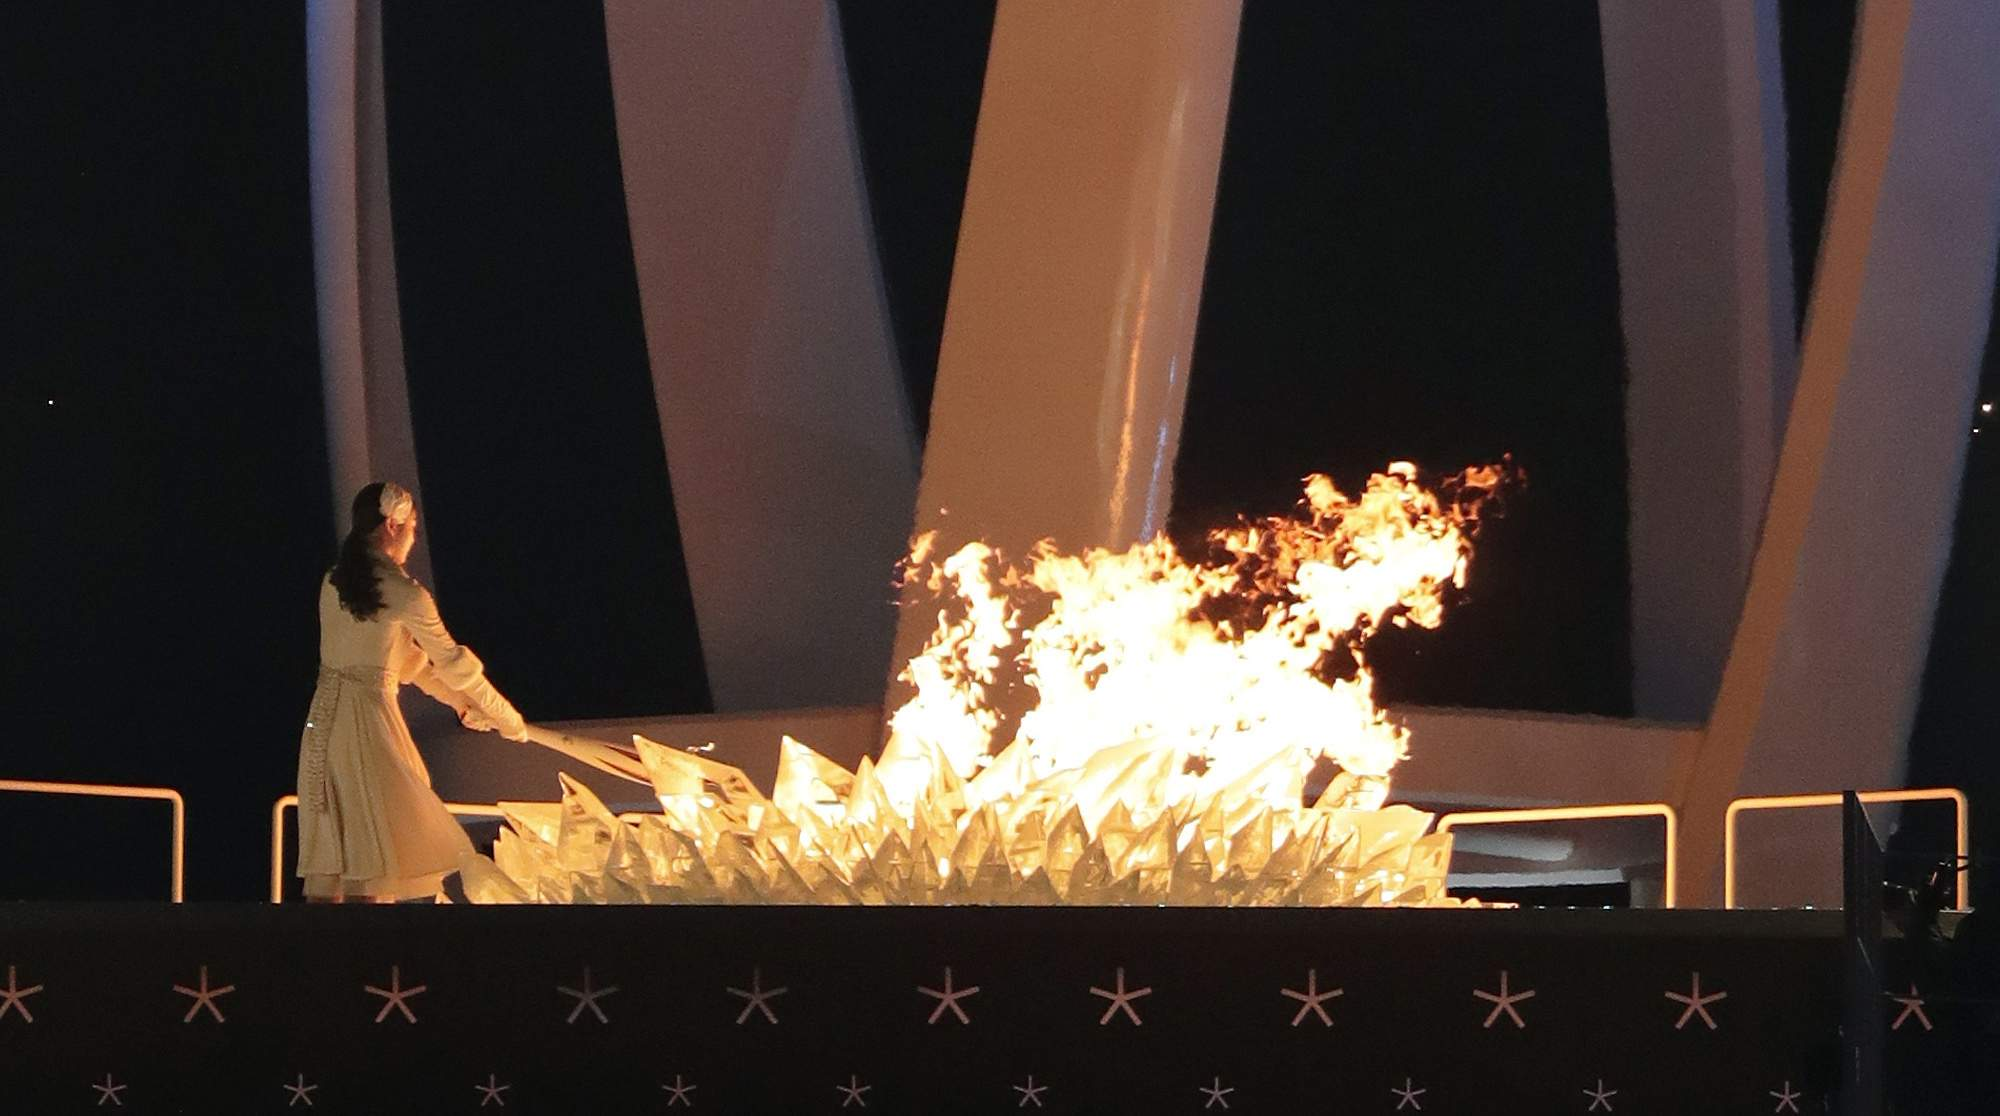 Yuna Kim, former South Korean figure skater lights the Olympic cauldron during the opening ceremony of the 2018 Winter Olympics in Pyeongchang, South Korea, Friday, Feb. 9, 2018. (AP Photo/Julie Jacobson)